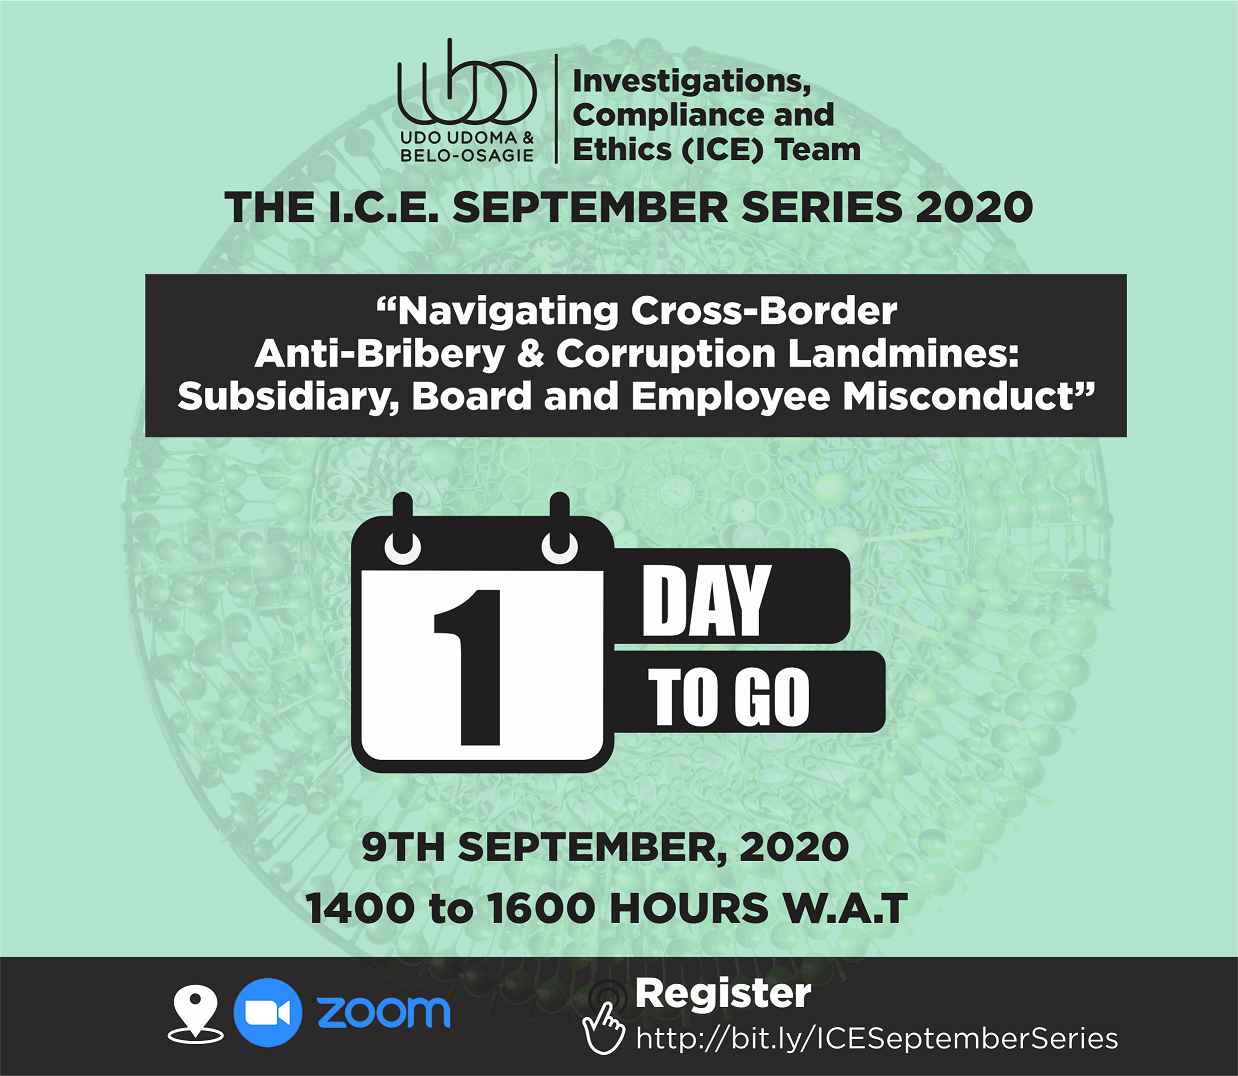 The countdown is on! Join us tomorrow at the Udo Udoma & Belo-Osagie ICE September Series